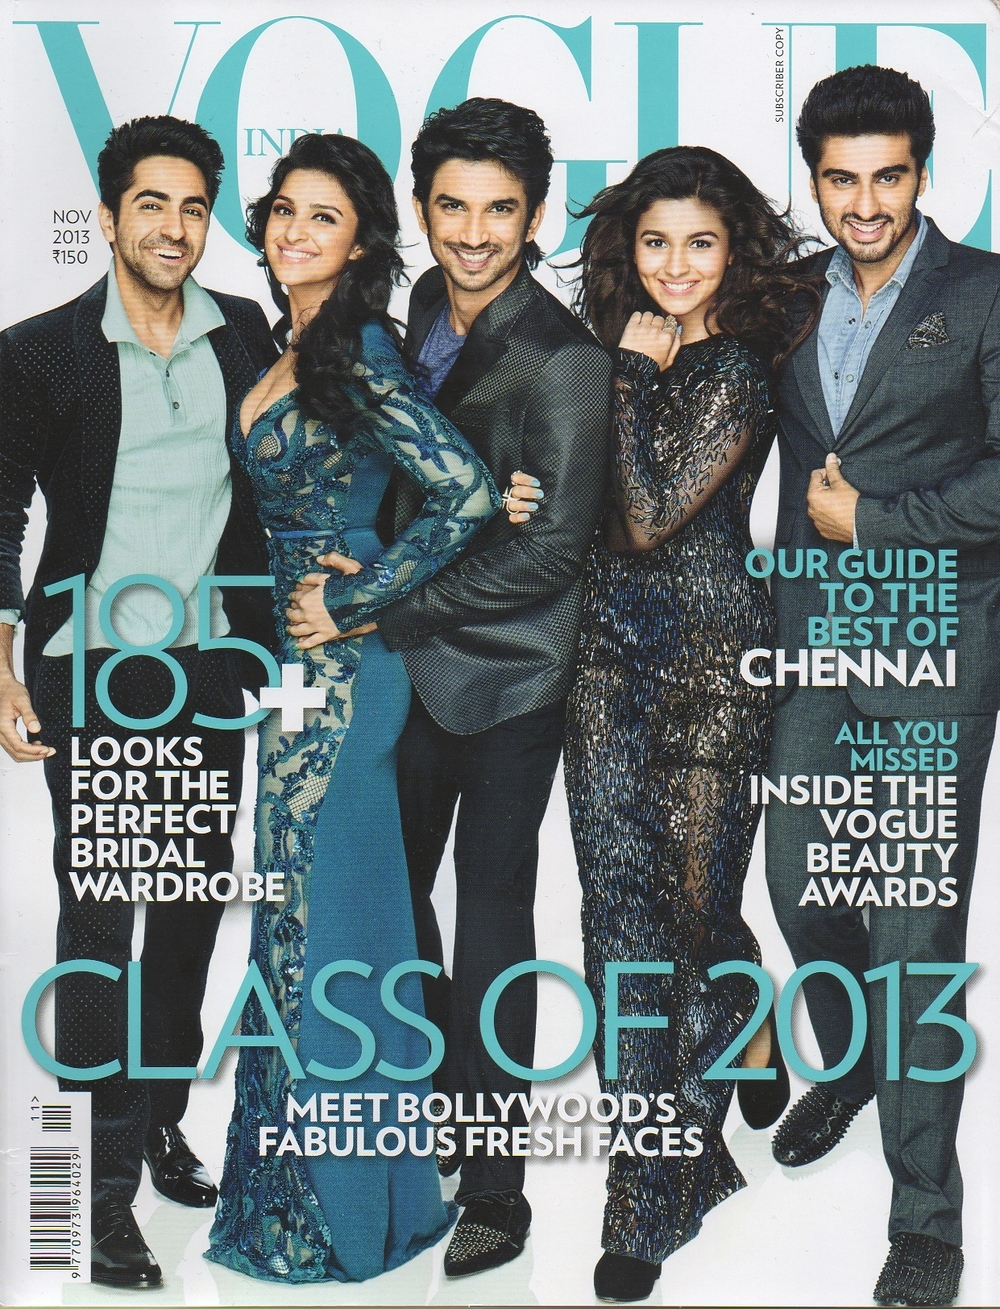 2013-11 VOGUE IN - Cover.jpg